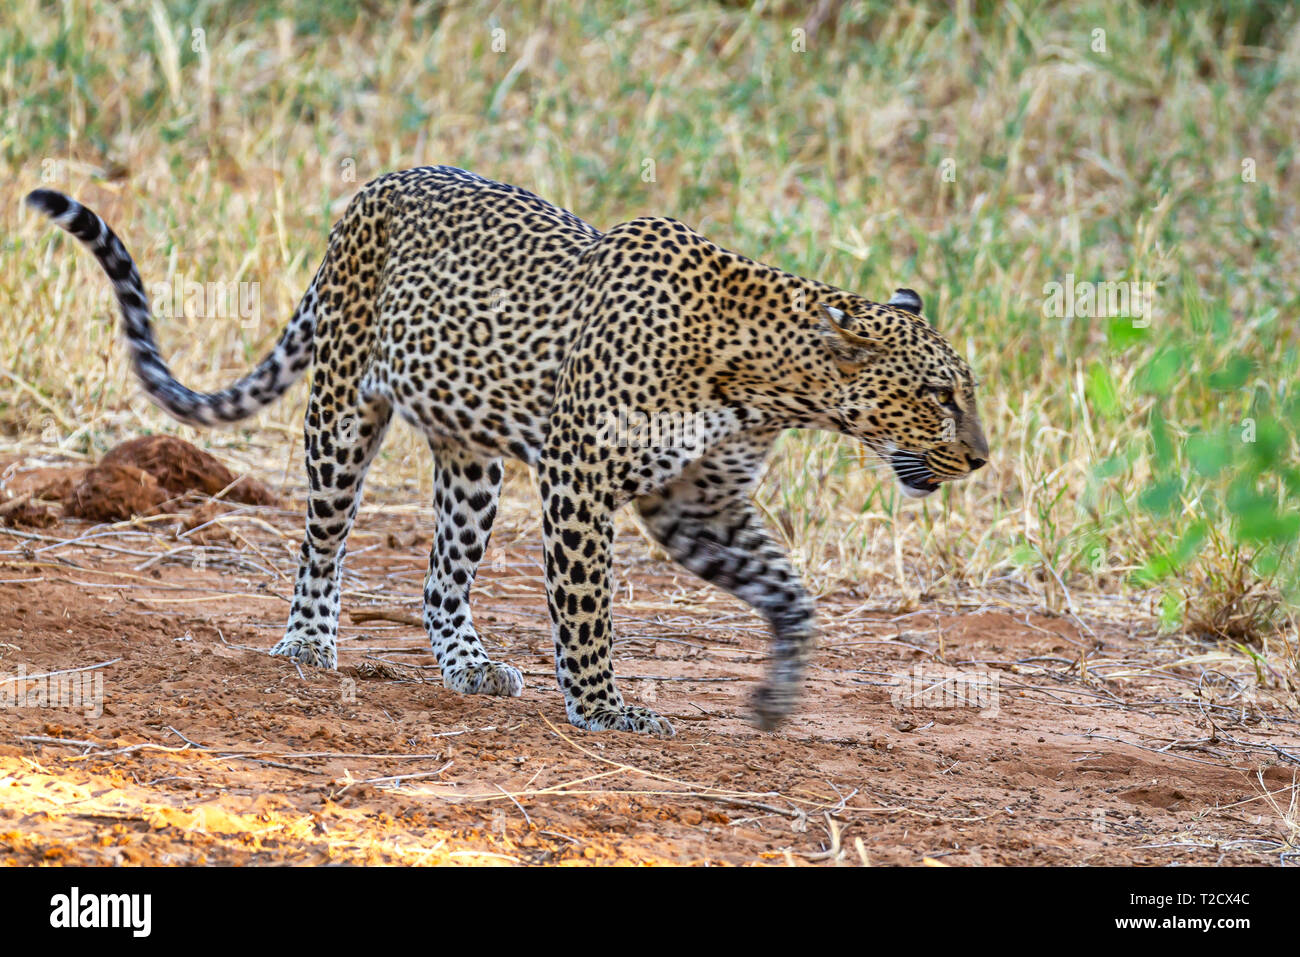 Leopard Panthera pardus Solitary powerful big cat walking with motion blur of paw Side view face head body Samburu National Reserve Kenya East Africa - Stock Image